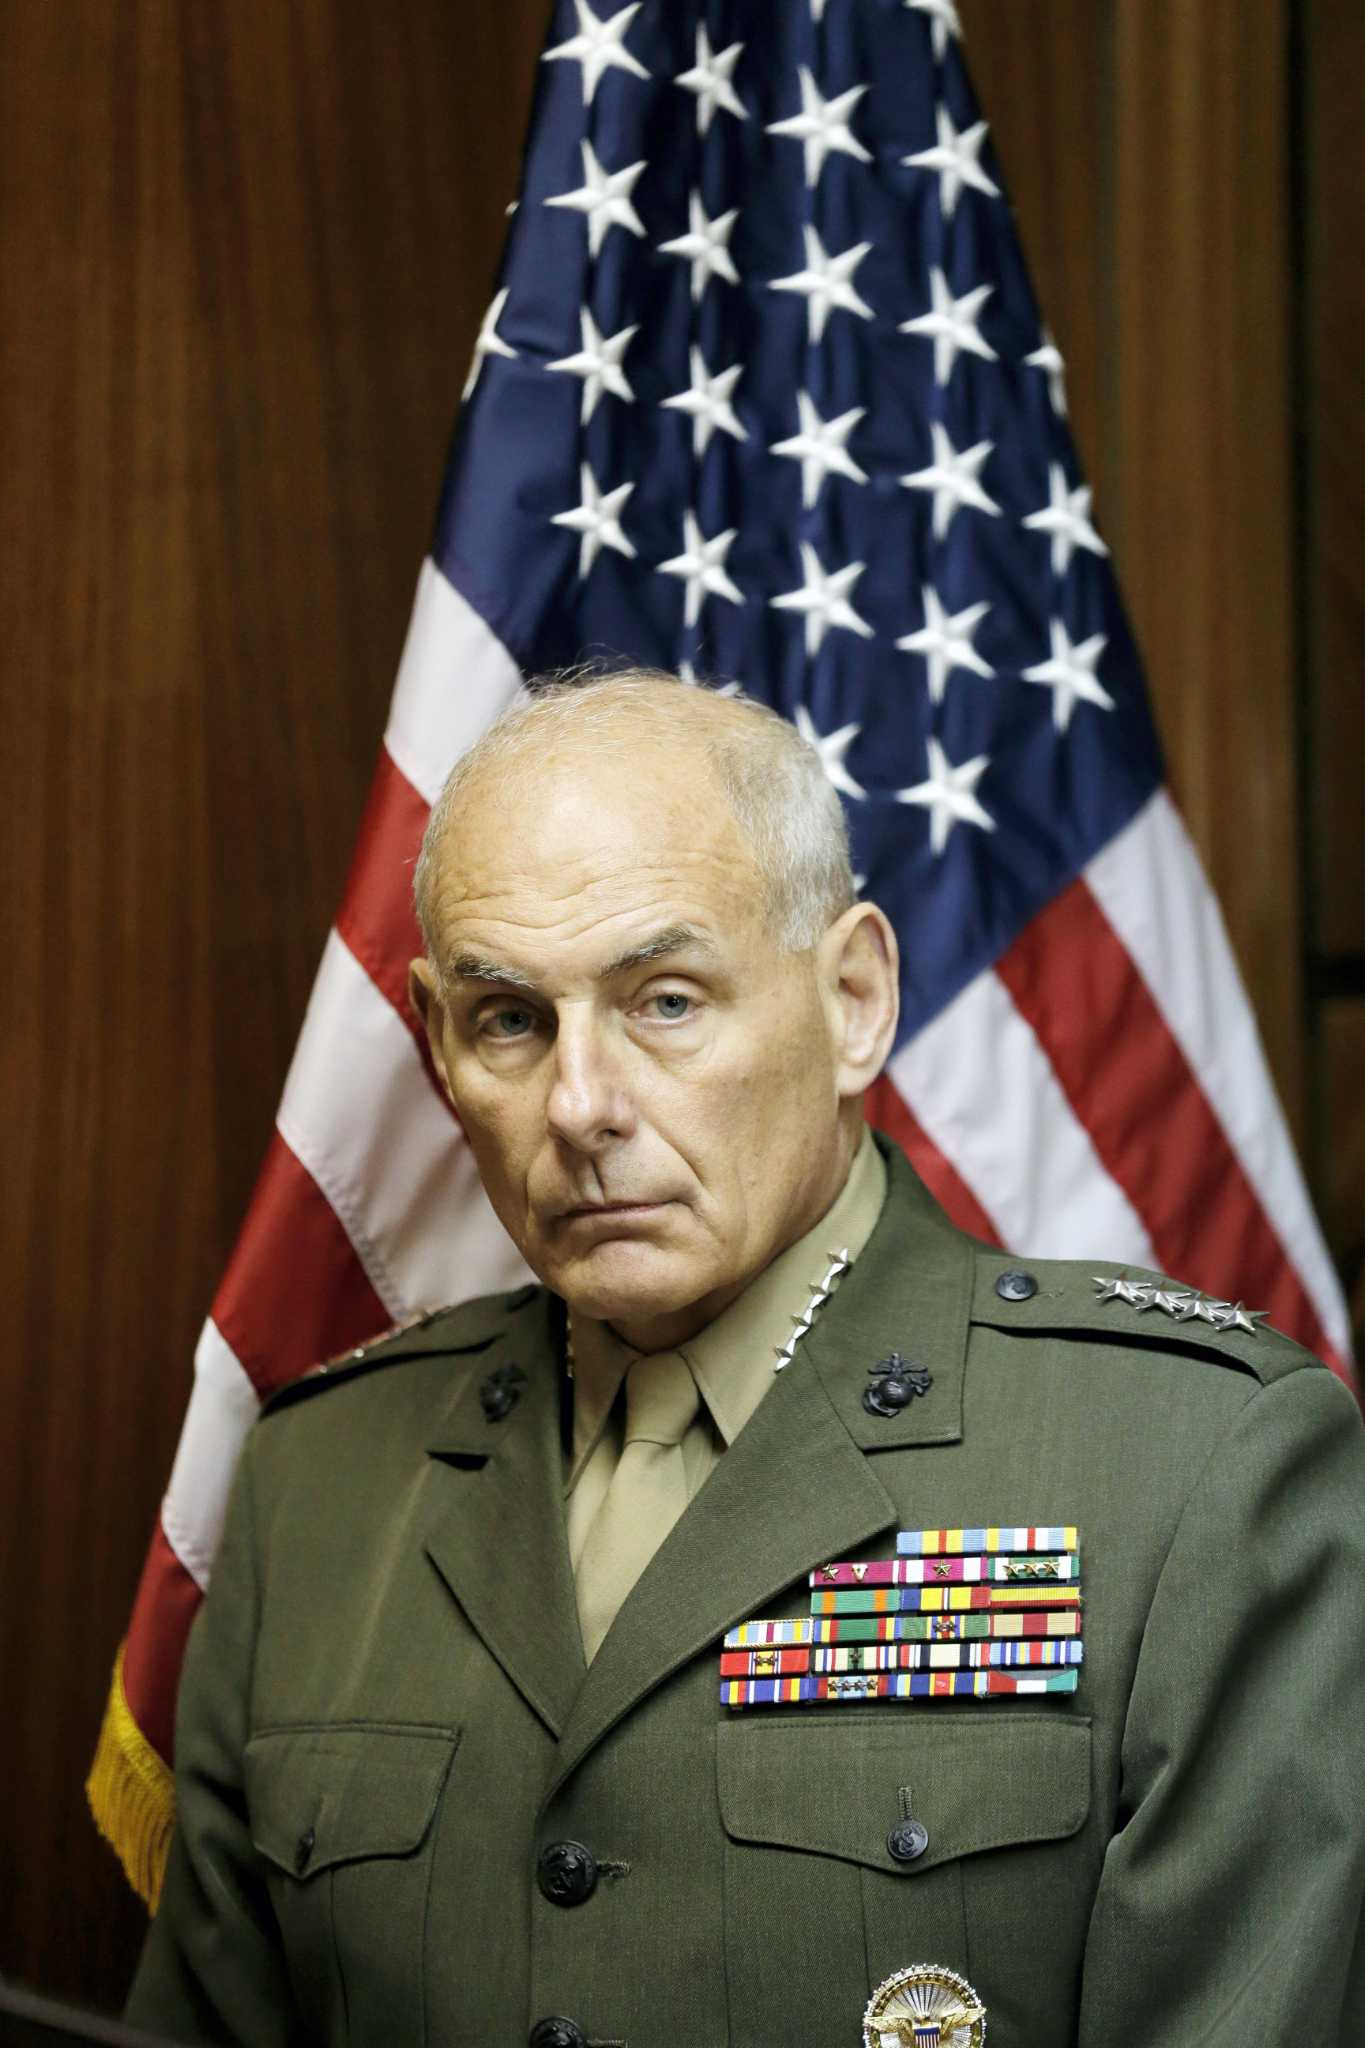 Forum: John Kelly is President Trump's cry for help - The